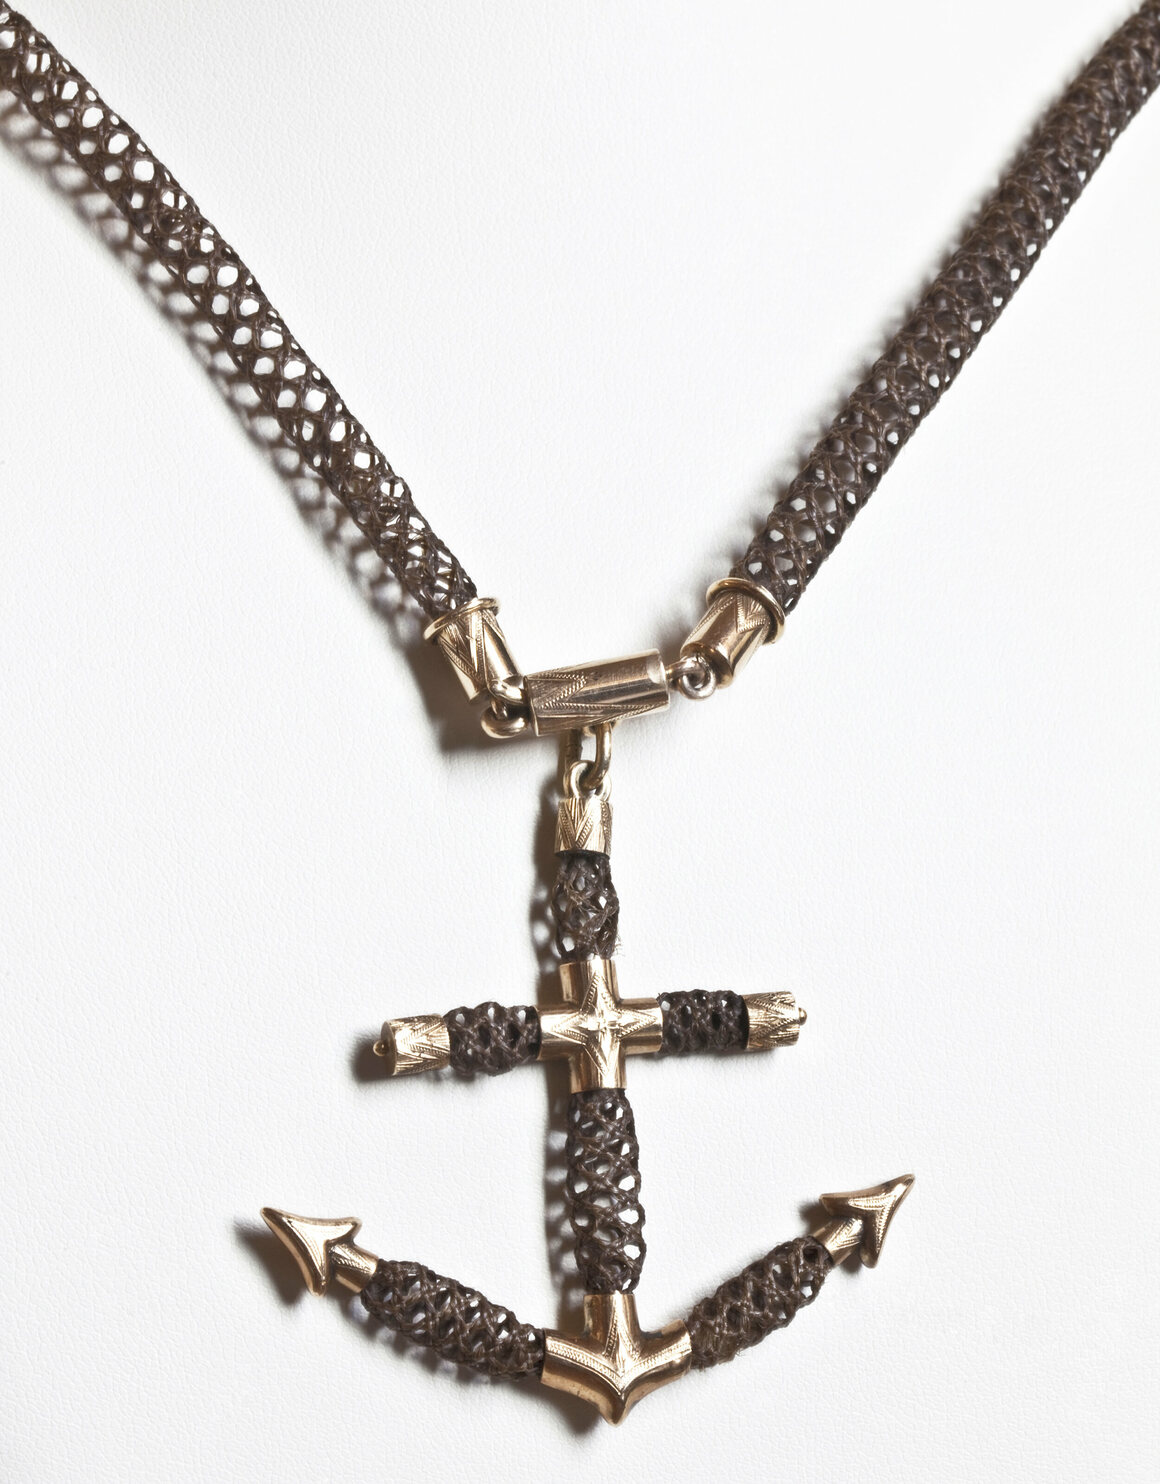 Necklace with anchor pendant, made from gold and human hair using table work, mid-to-late 19th century.